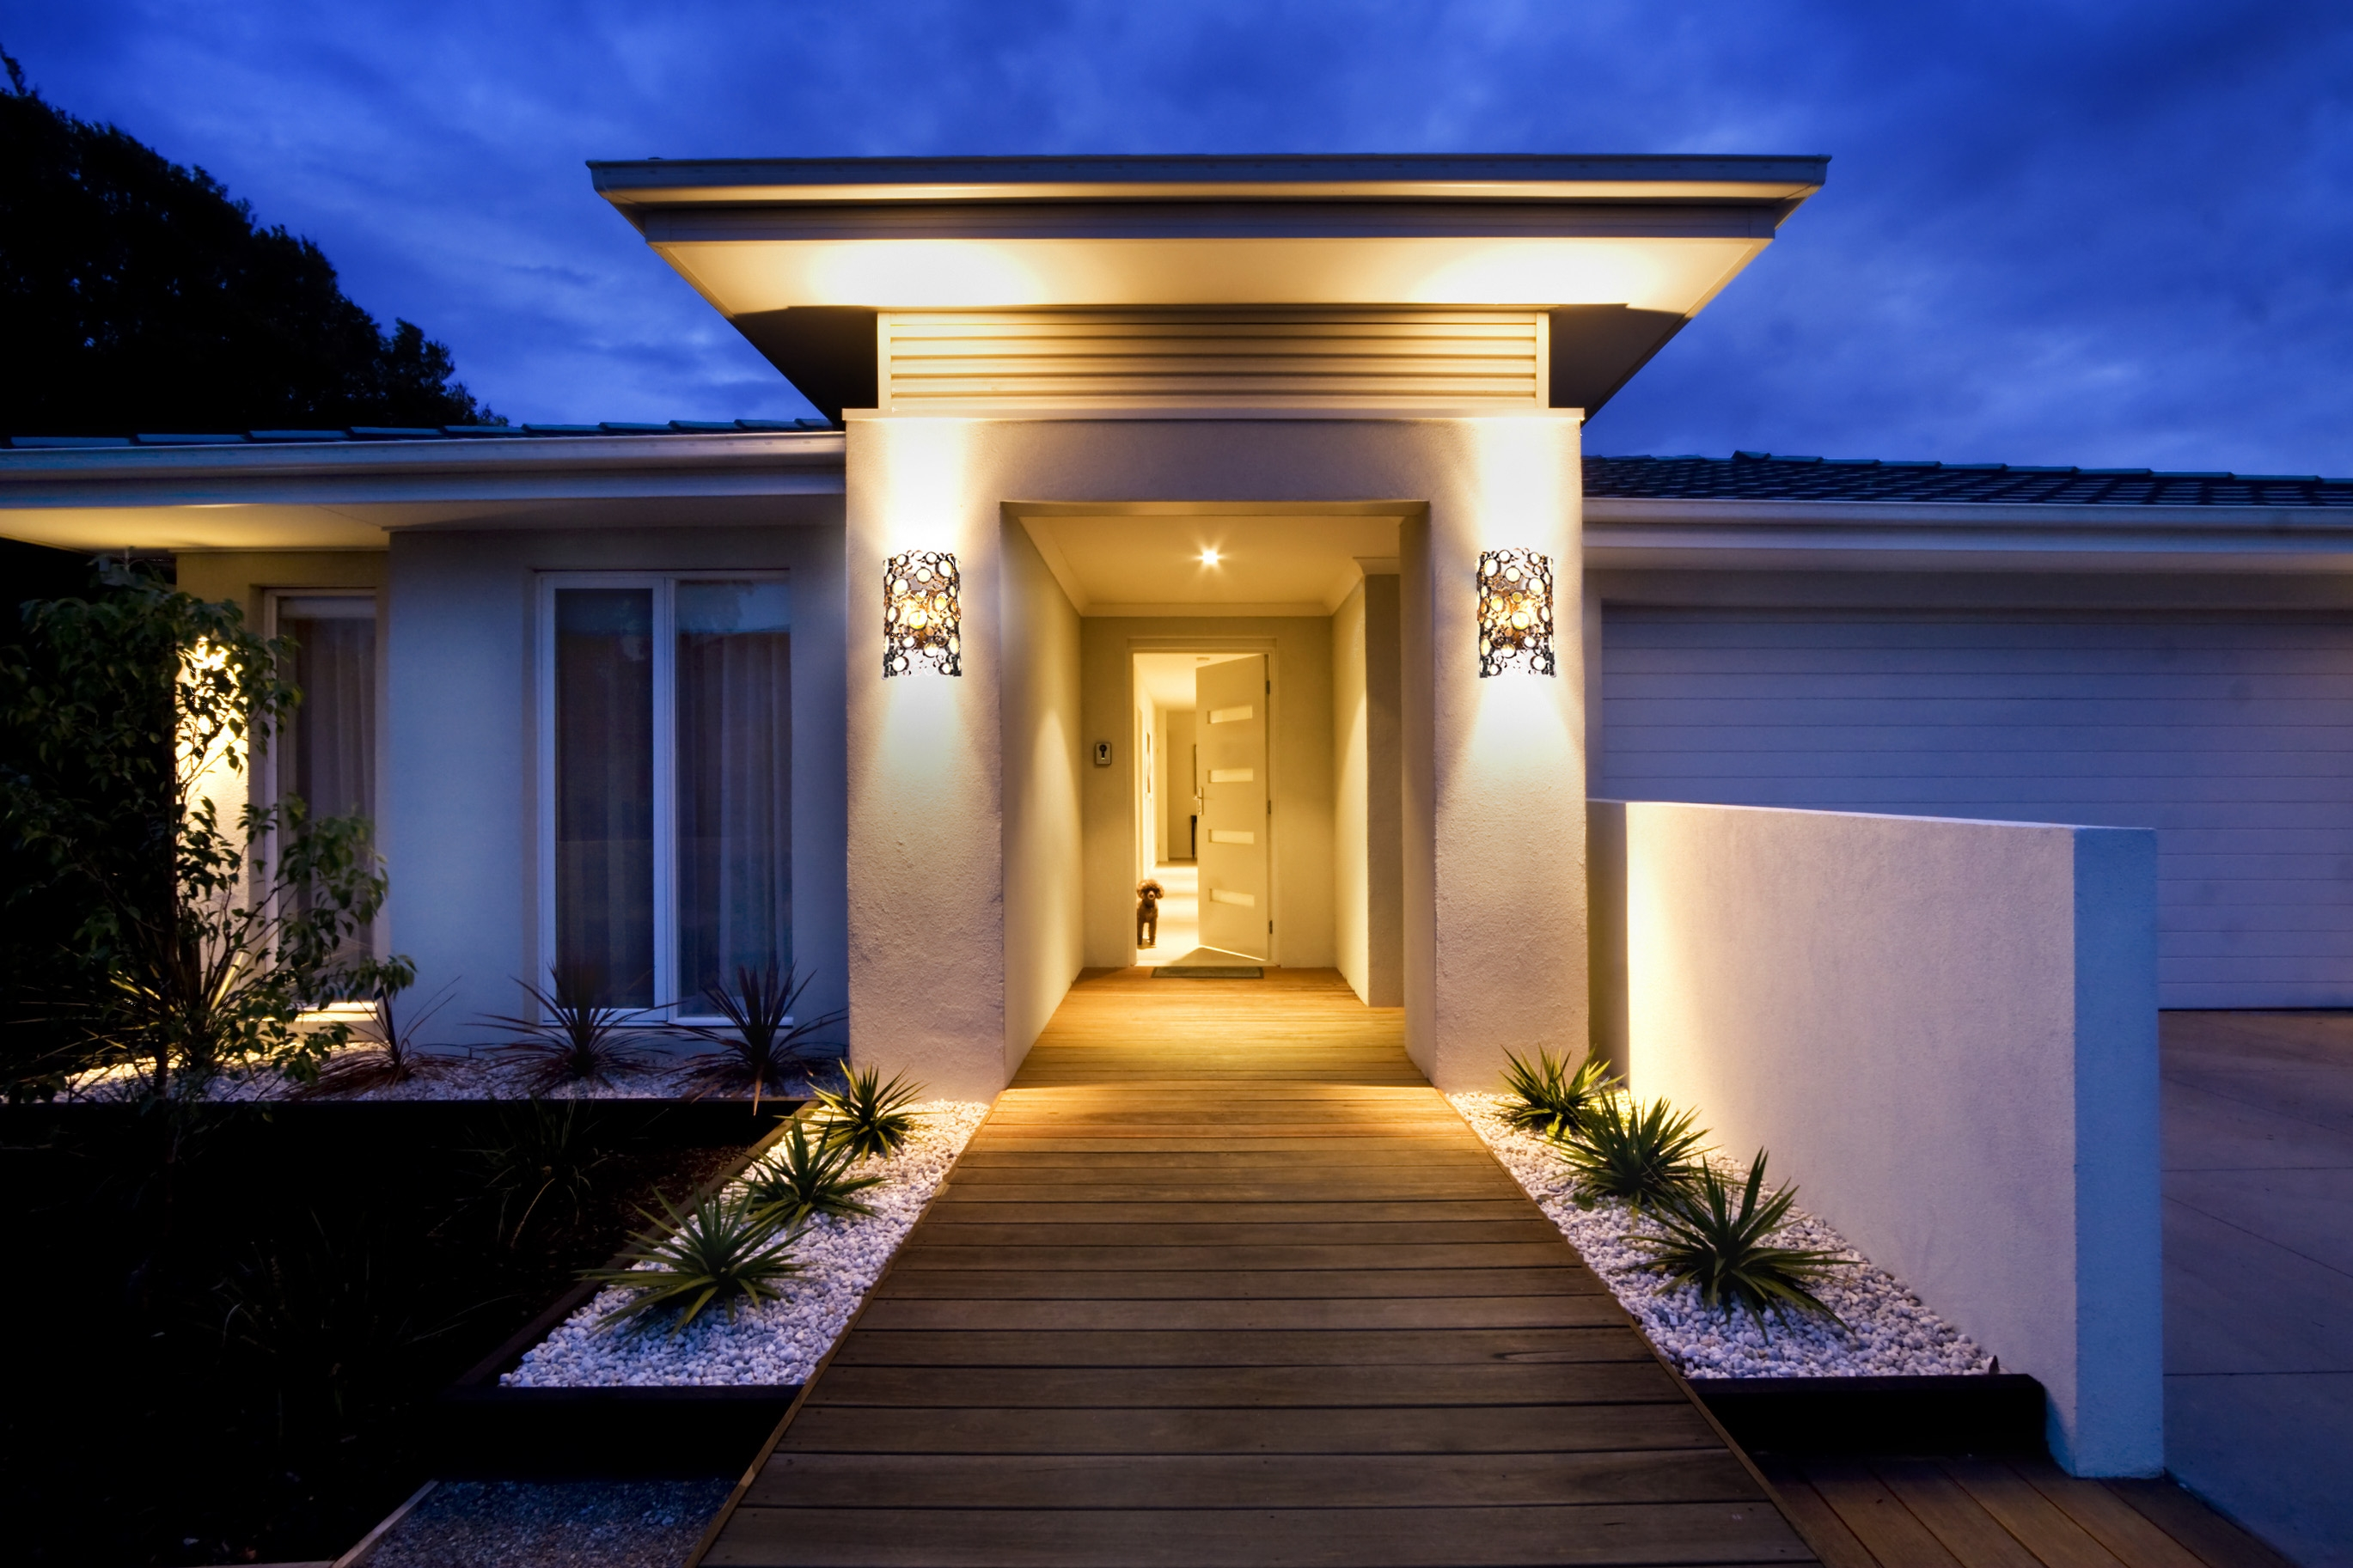 Home Lighting Best Wall Lighting Design To Live Your House Interior